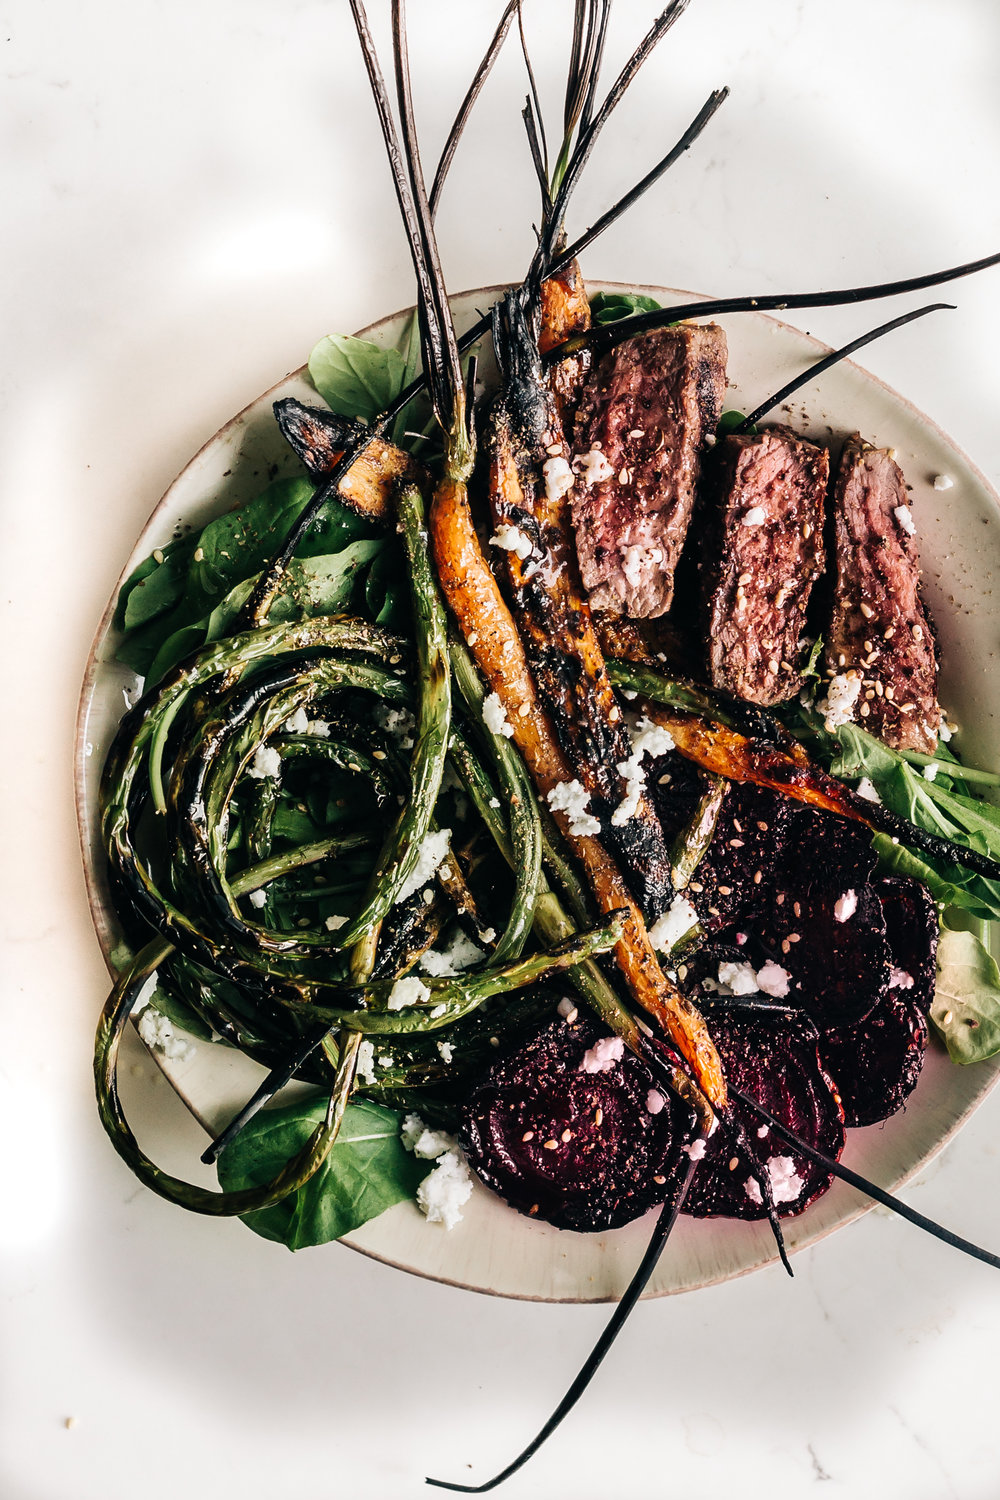 Steak Salad with Charred Vegetables   (use the mizuna instead of arugula and add the turnips instead of carrots!)